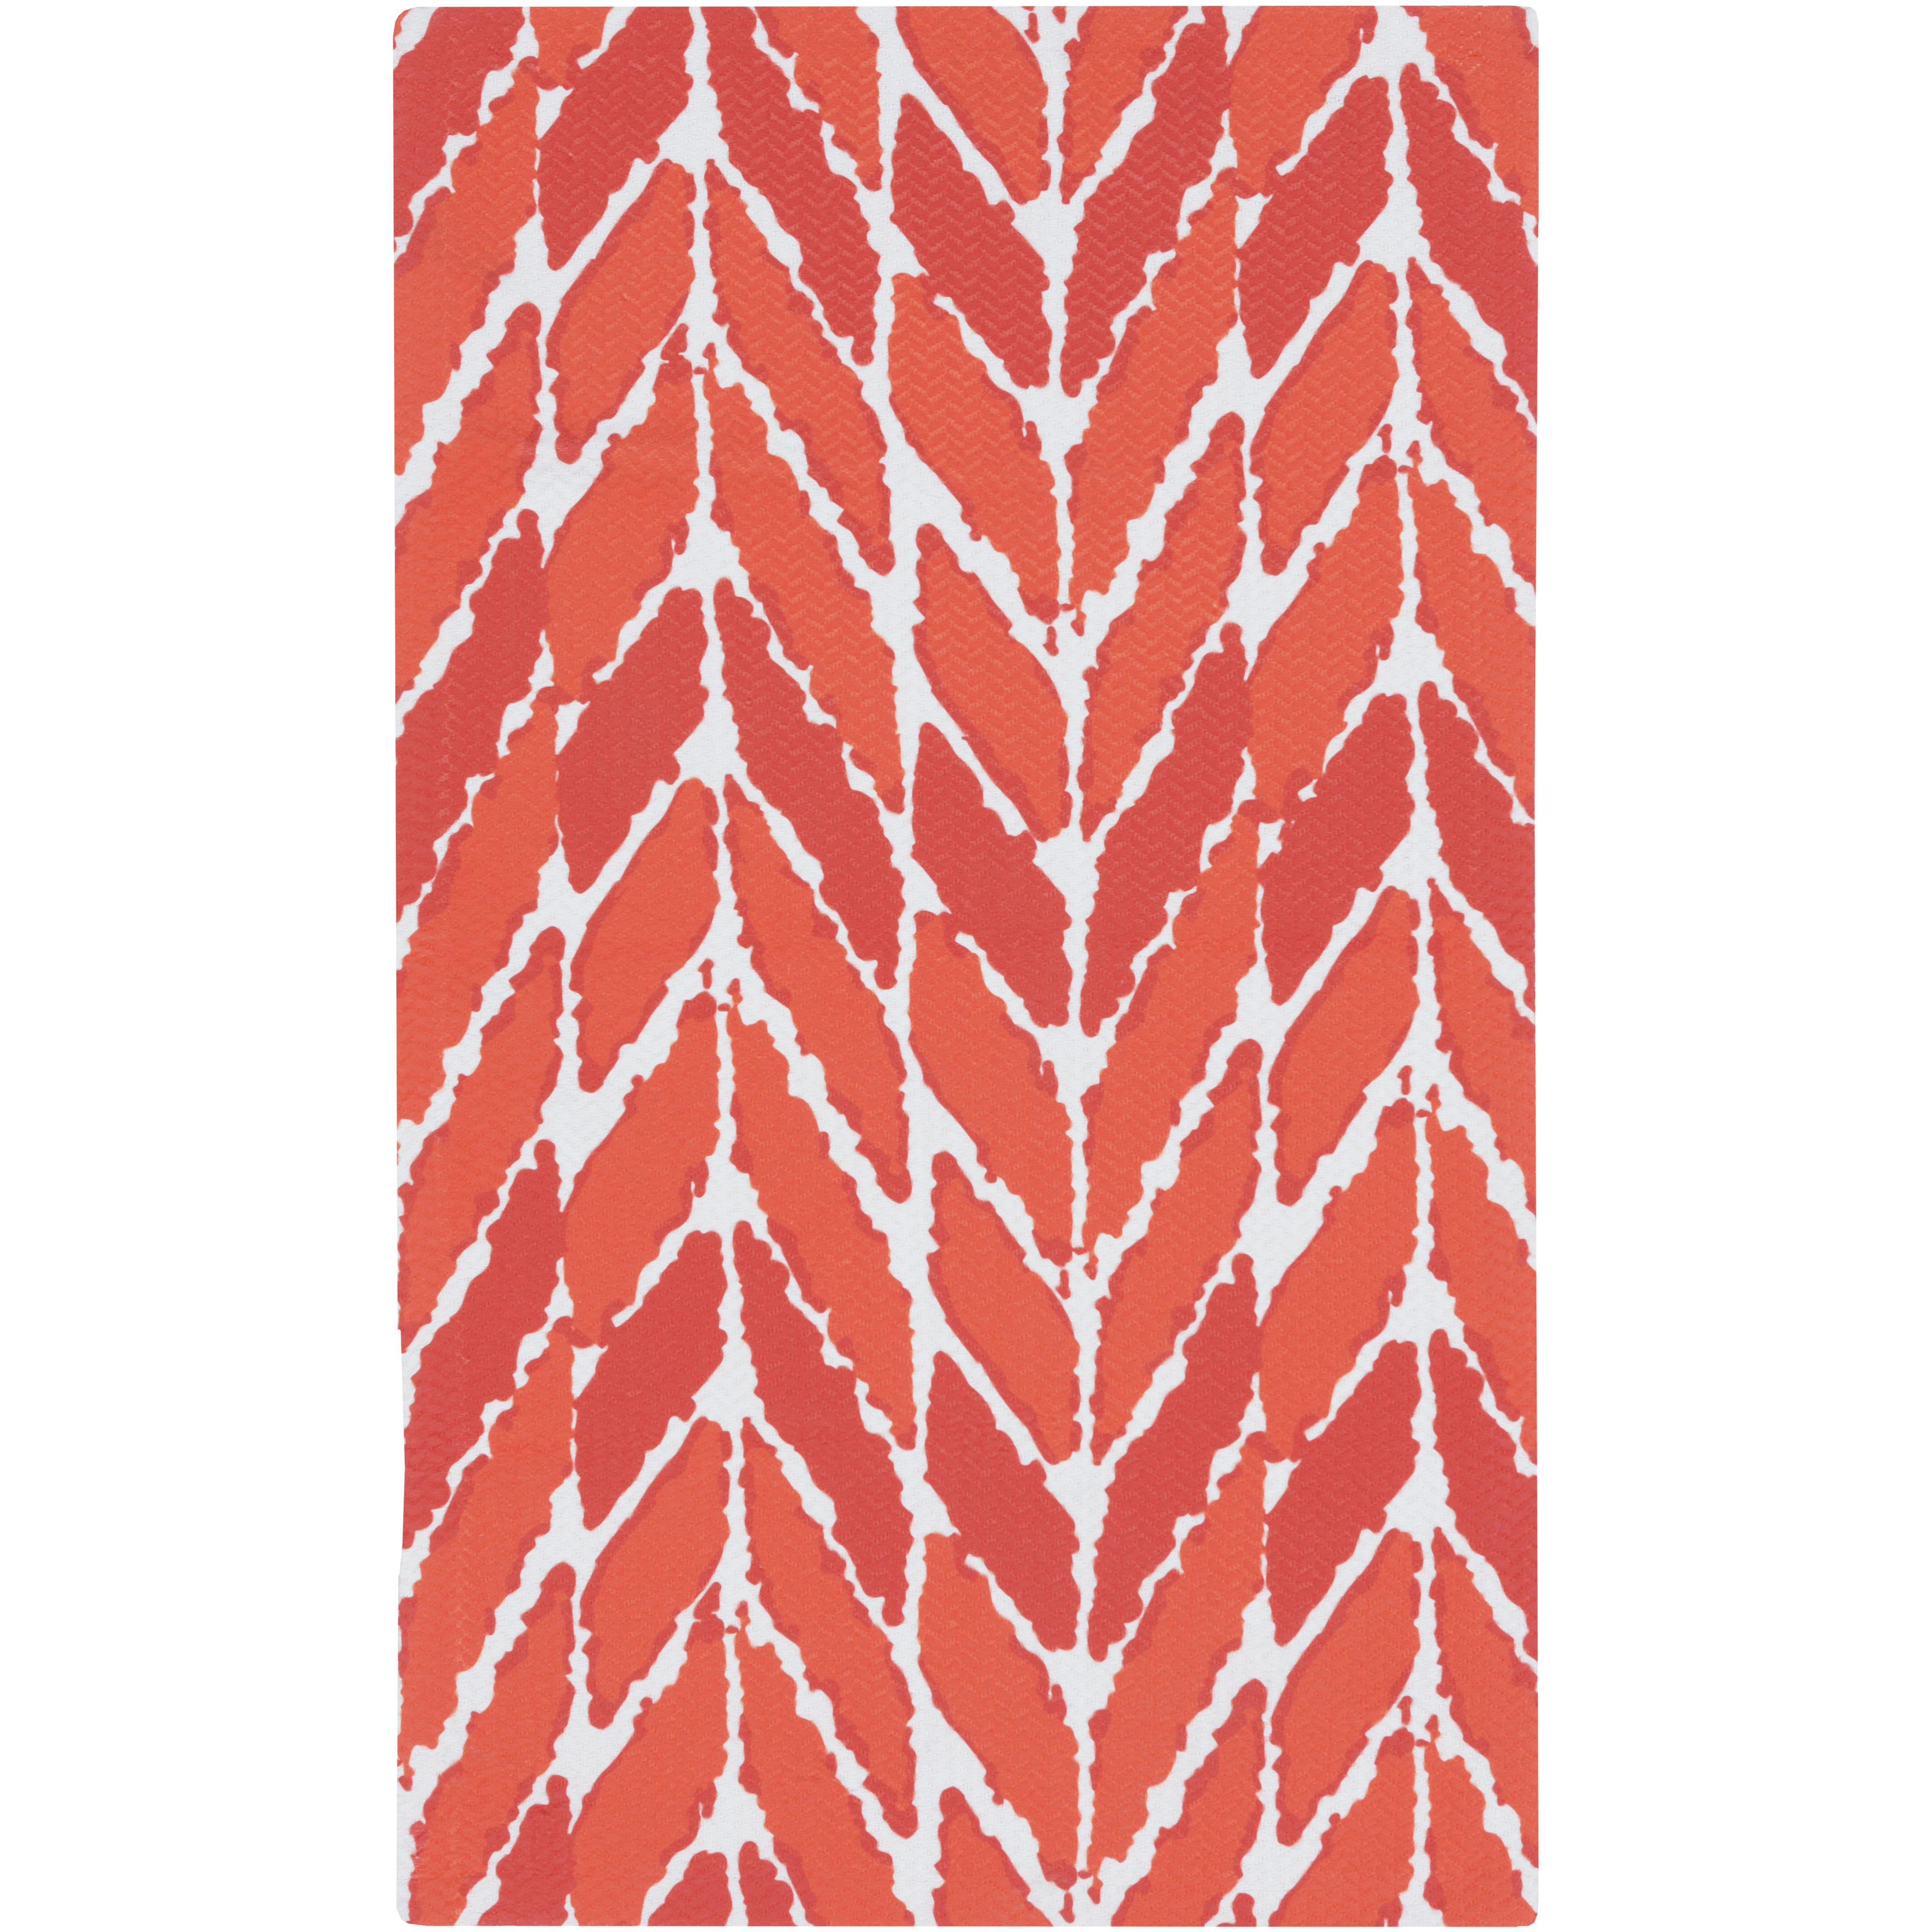 Surya Rugs Cape cod 2' x 3' - Item Number: CCD1006-23